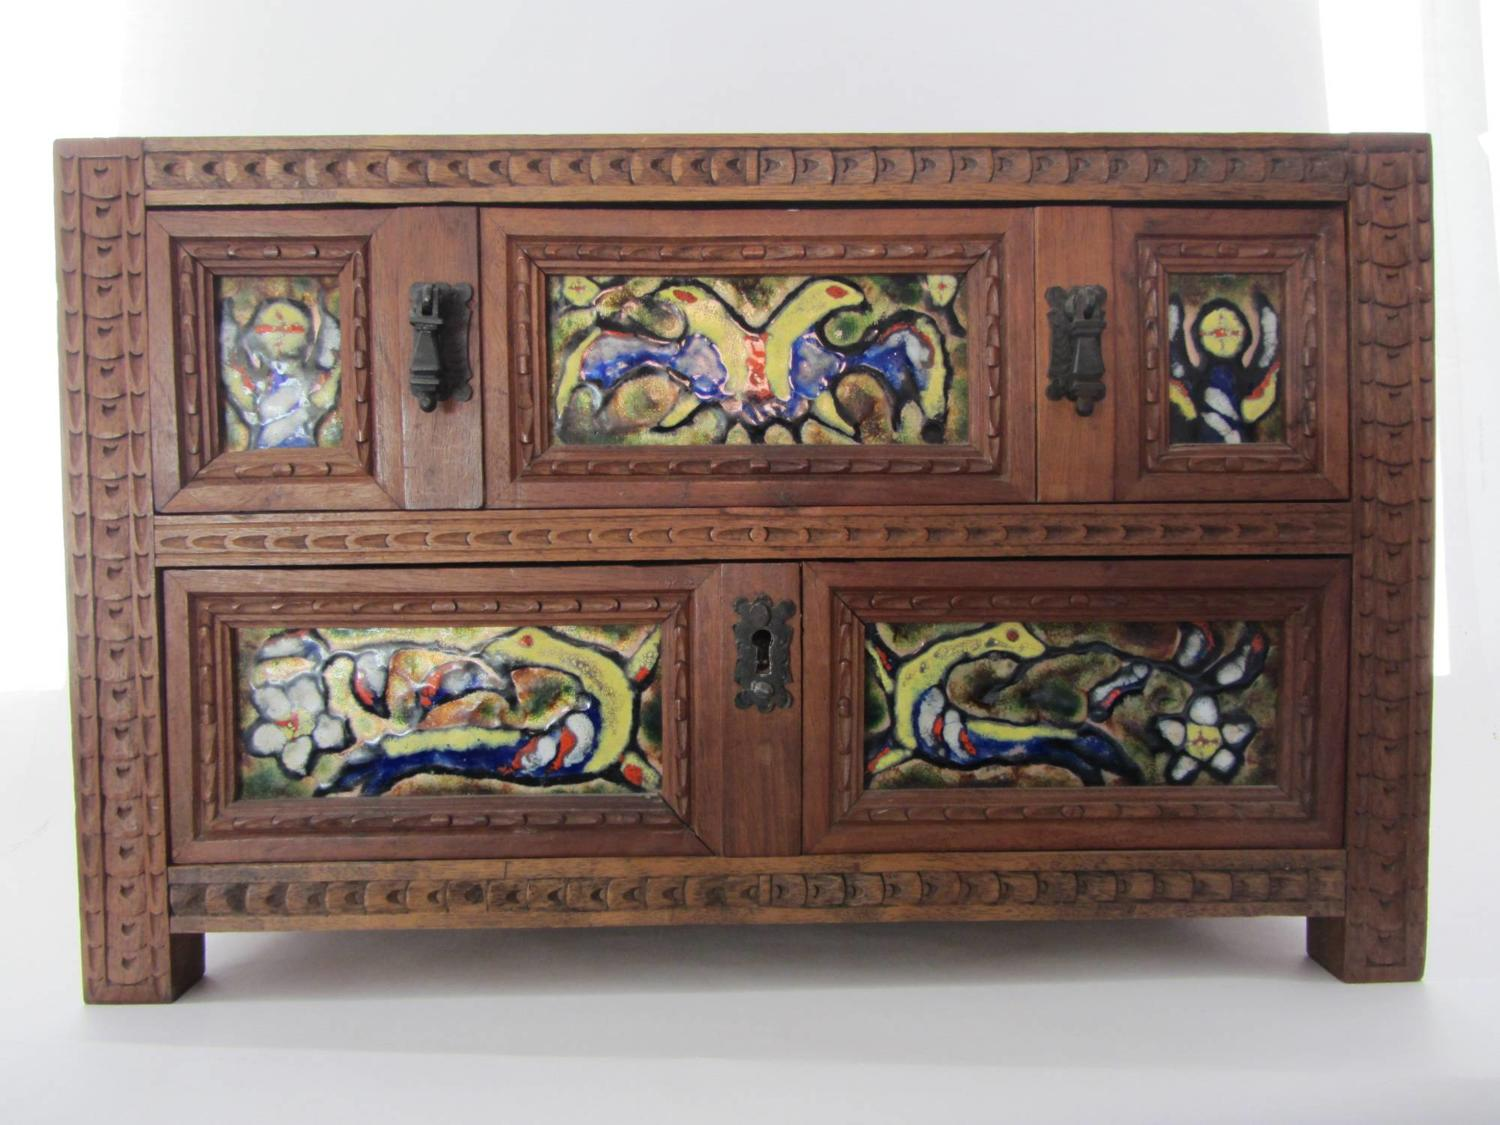 A Scandinavian Miniature Chest of Drawers with Enamel Plaques